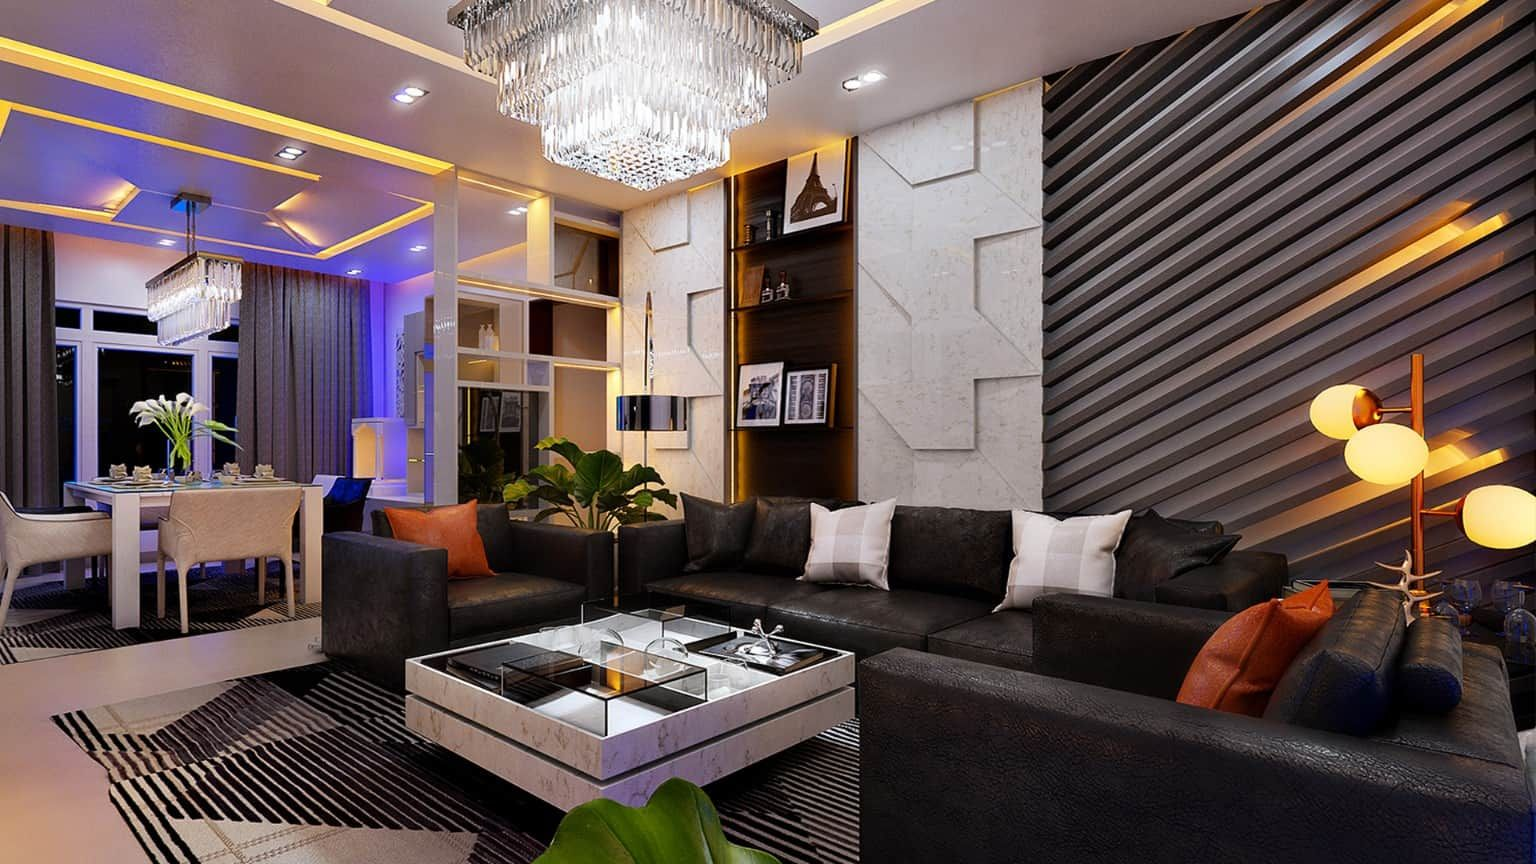 Best Interior Designers In Bangalore With Images Home Entrance